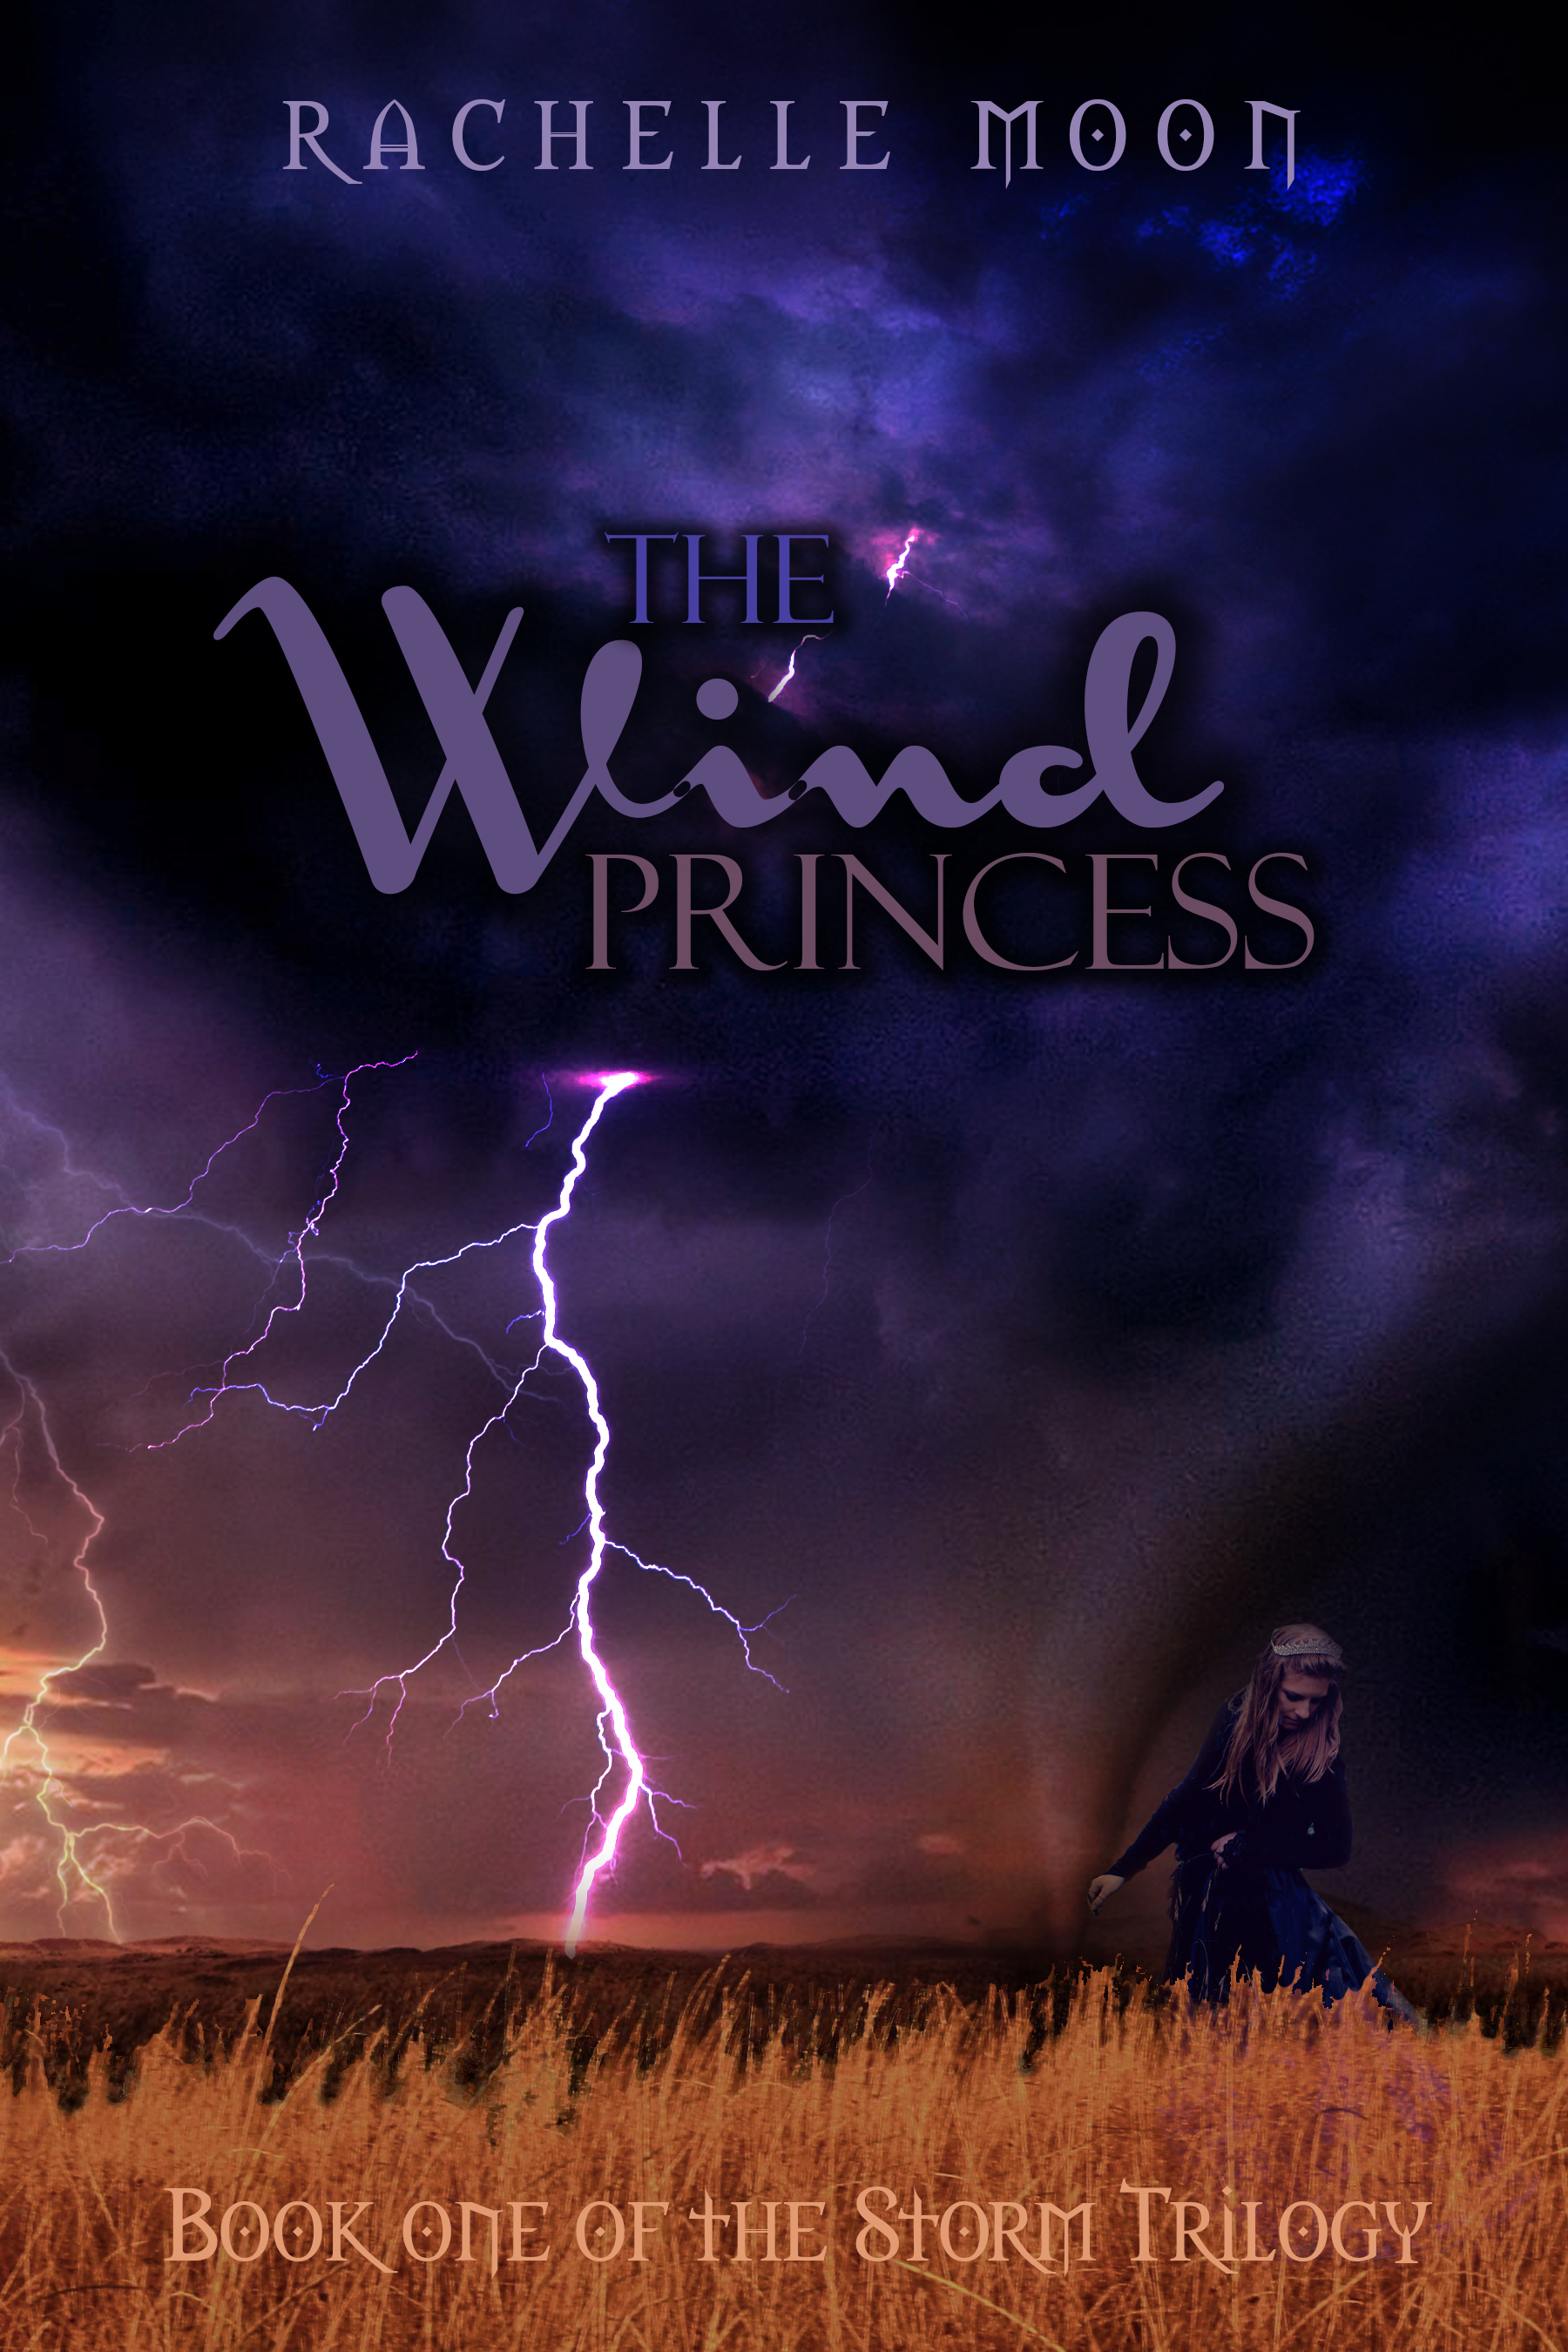 The Wind Princess by Rachelle Moon